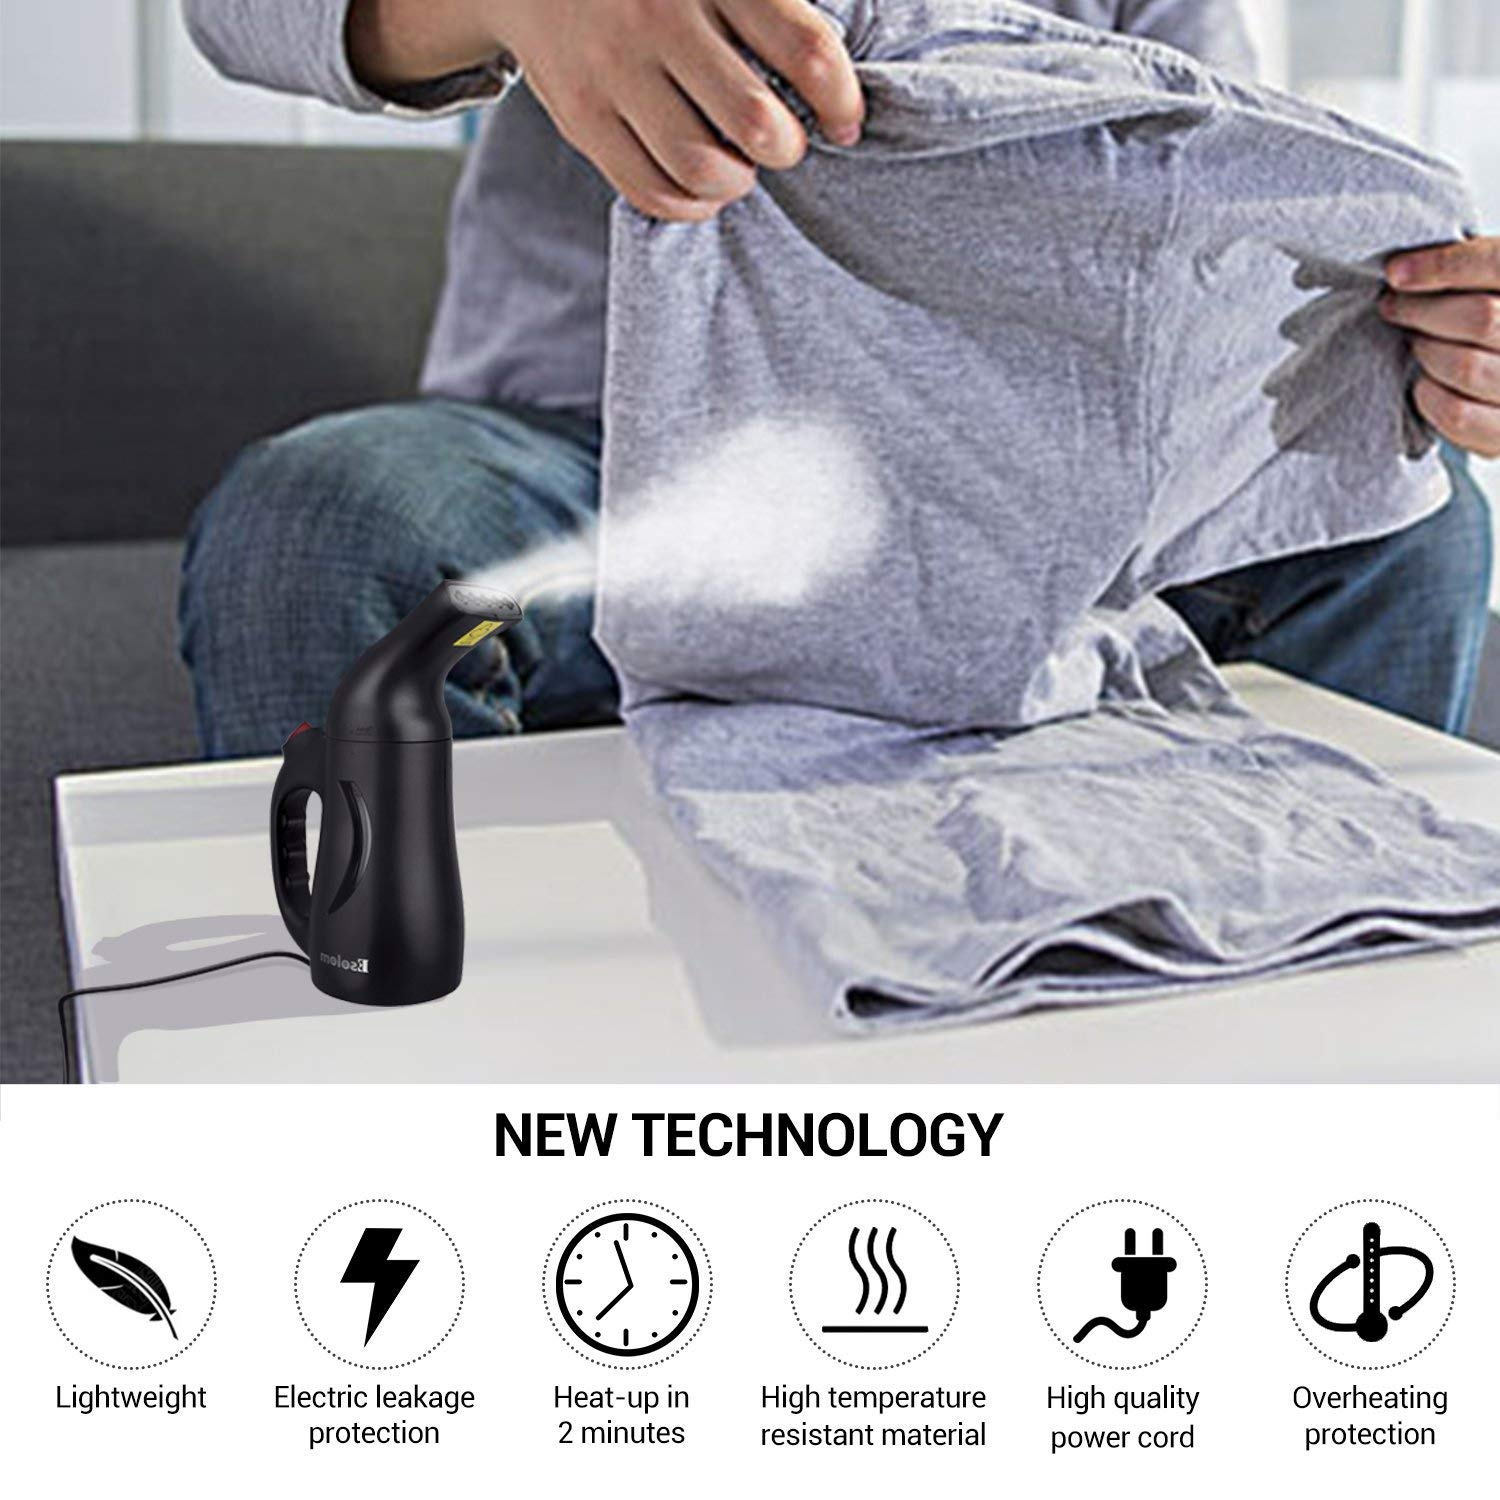 Handheld Clothes Steamer, ESOLOM Portable Travel Garment Steamer for Clothes Hand Steamer Wrinkle Remover with Automatic Shut-off and Fast Heat-up Function Safe Use for Travel and Home, 130ml-Black by ESOLOM (Image #3)